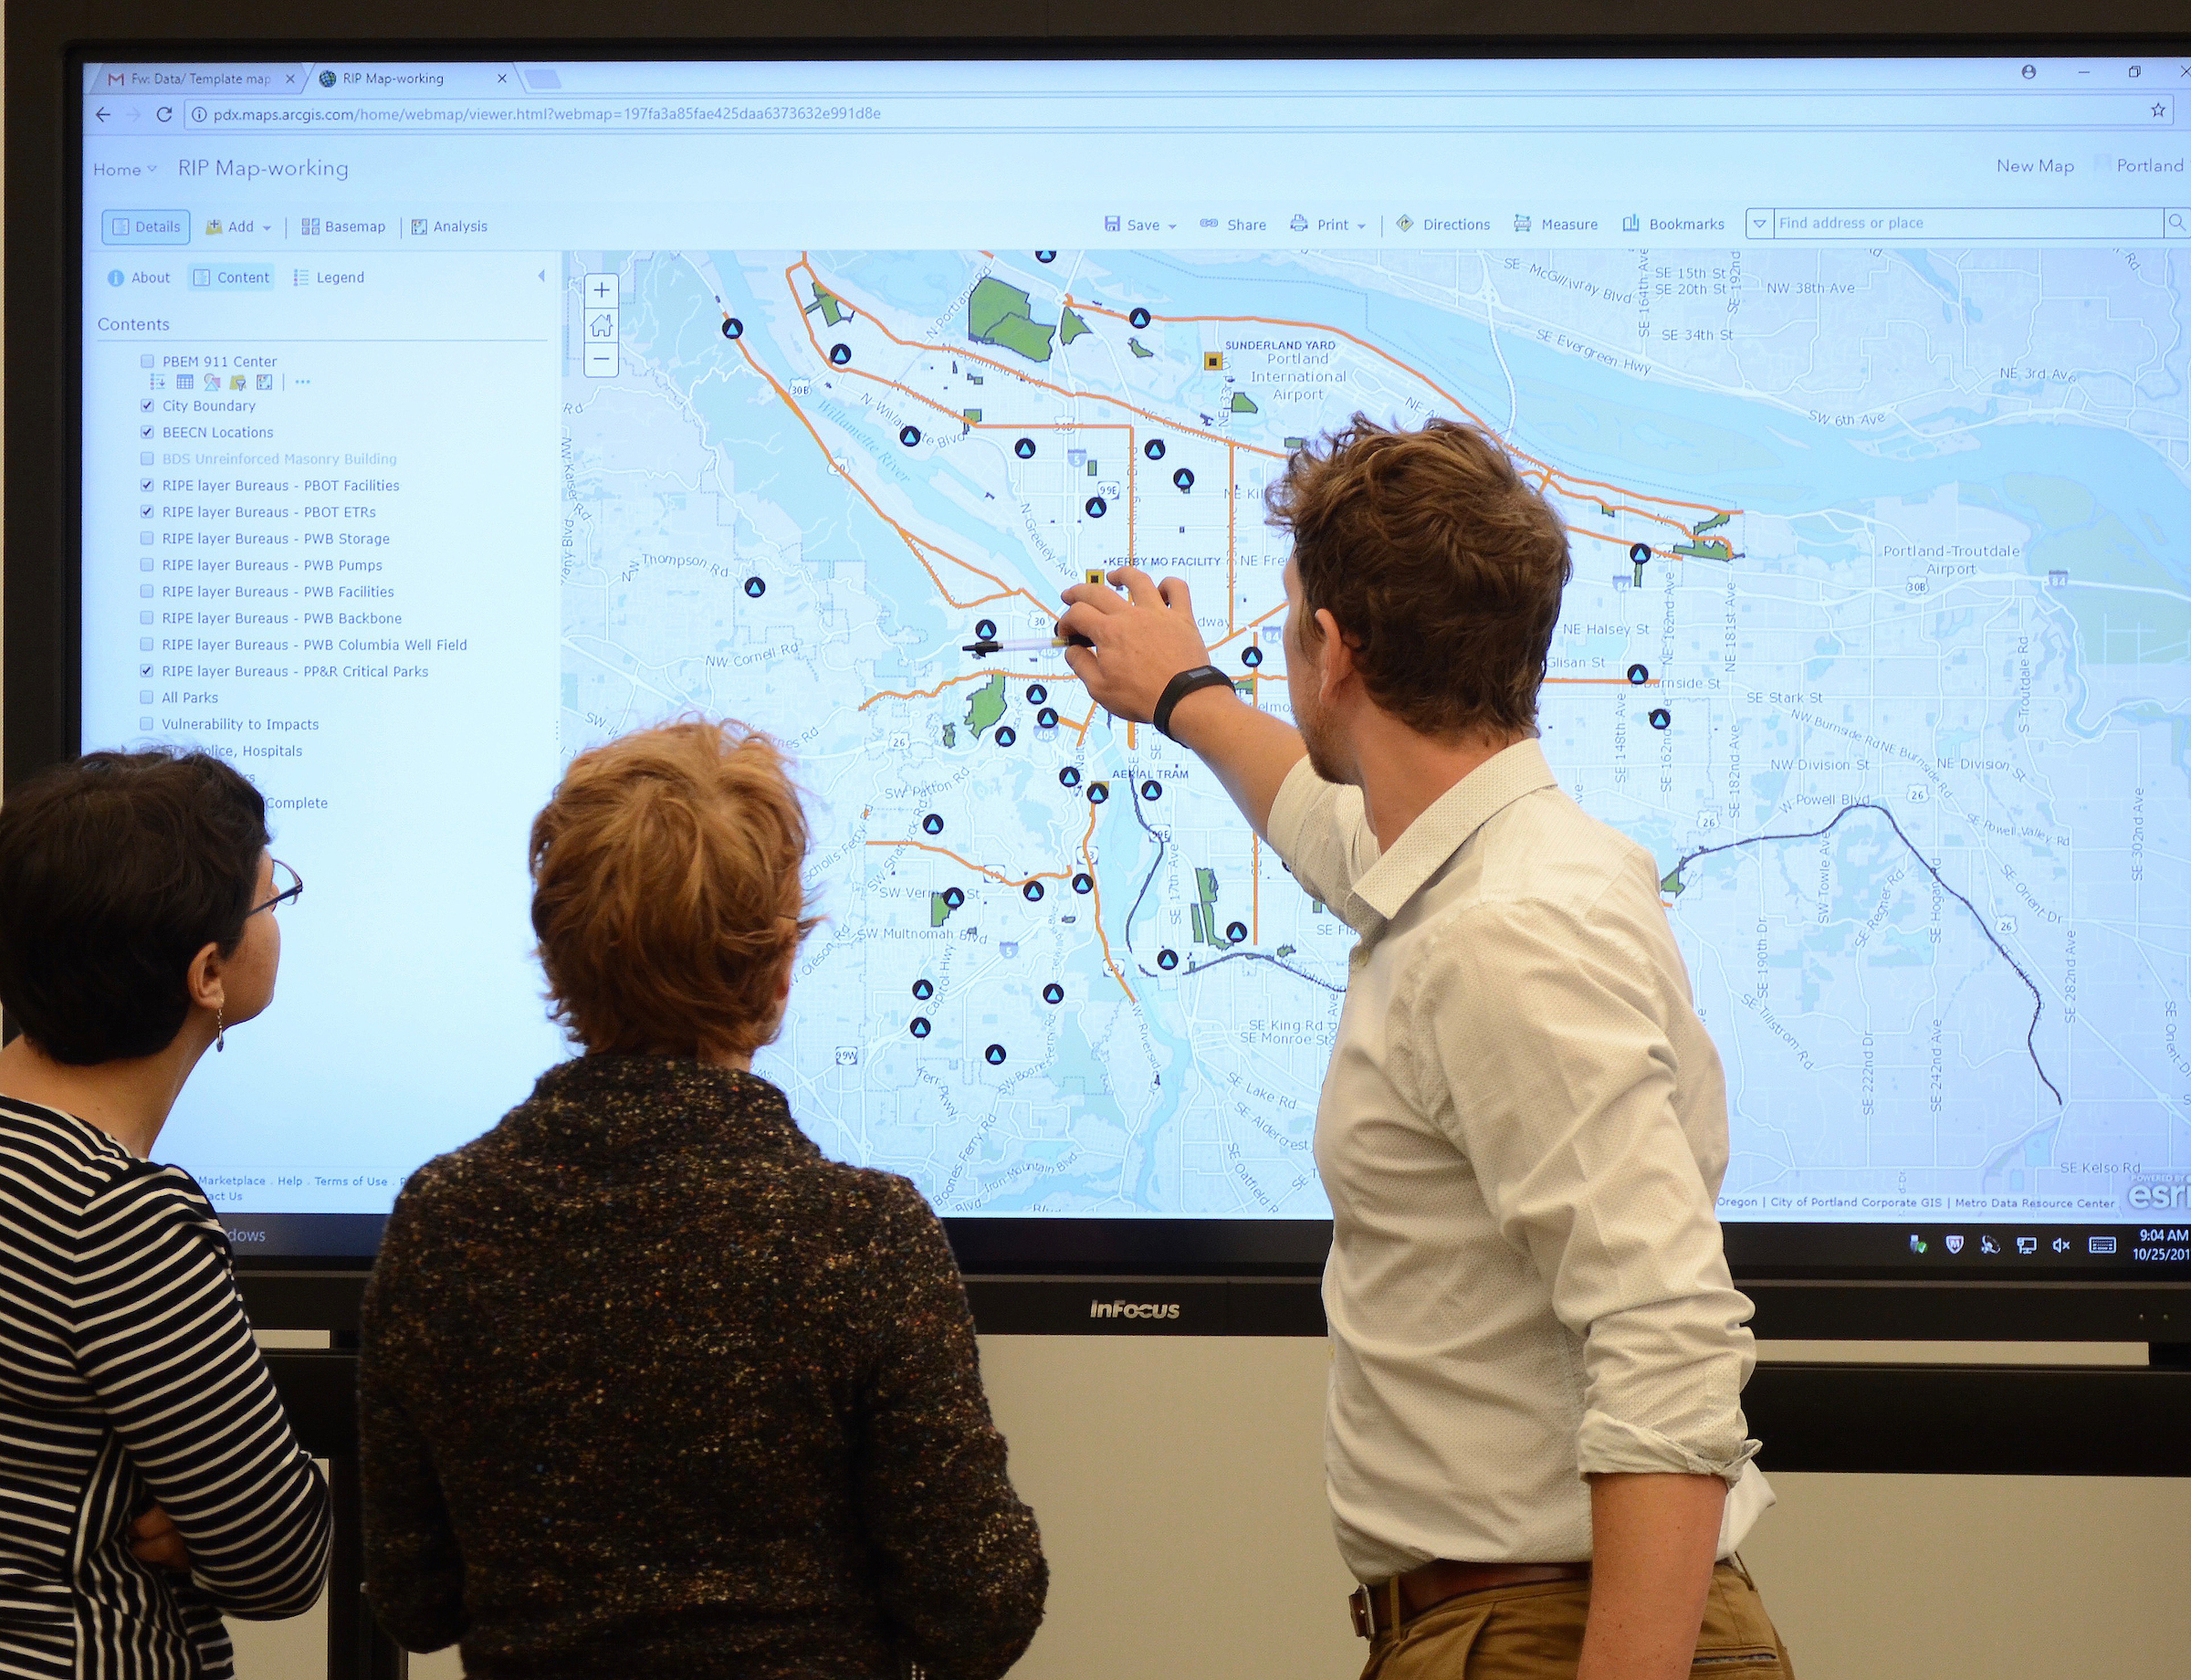 People interacting with a digital map